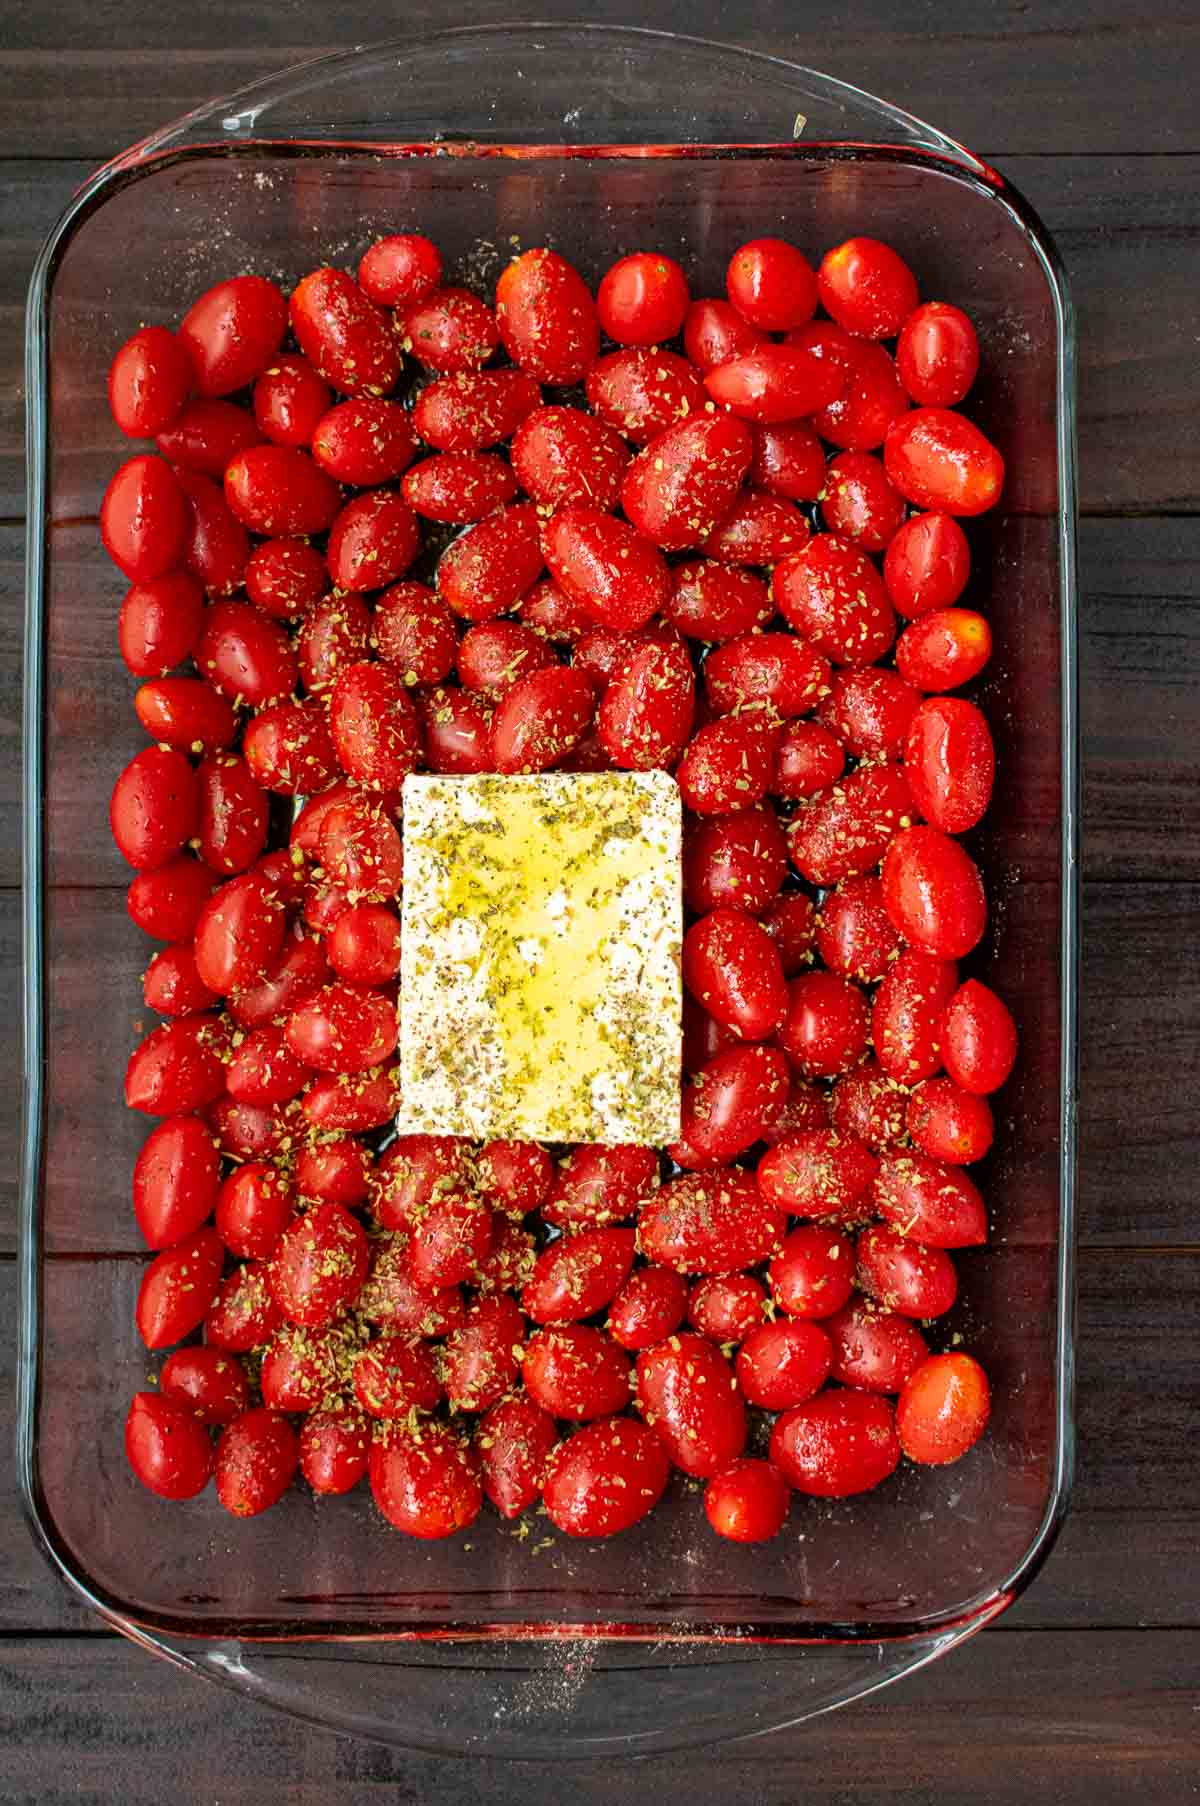 Overhead view of feta cheese and grape tomatoes in the casserole dish.